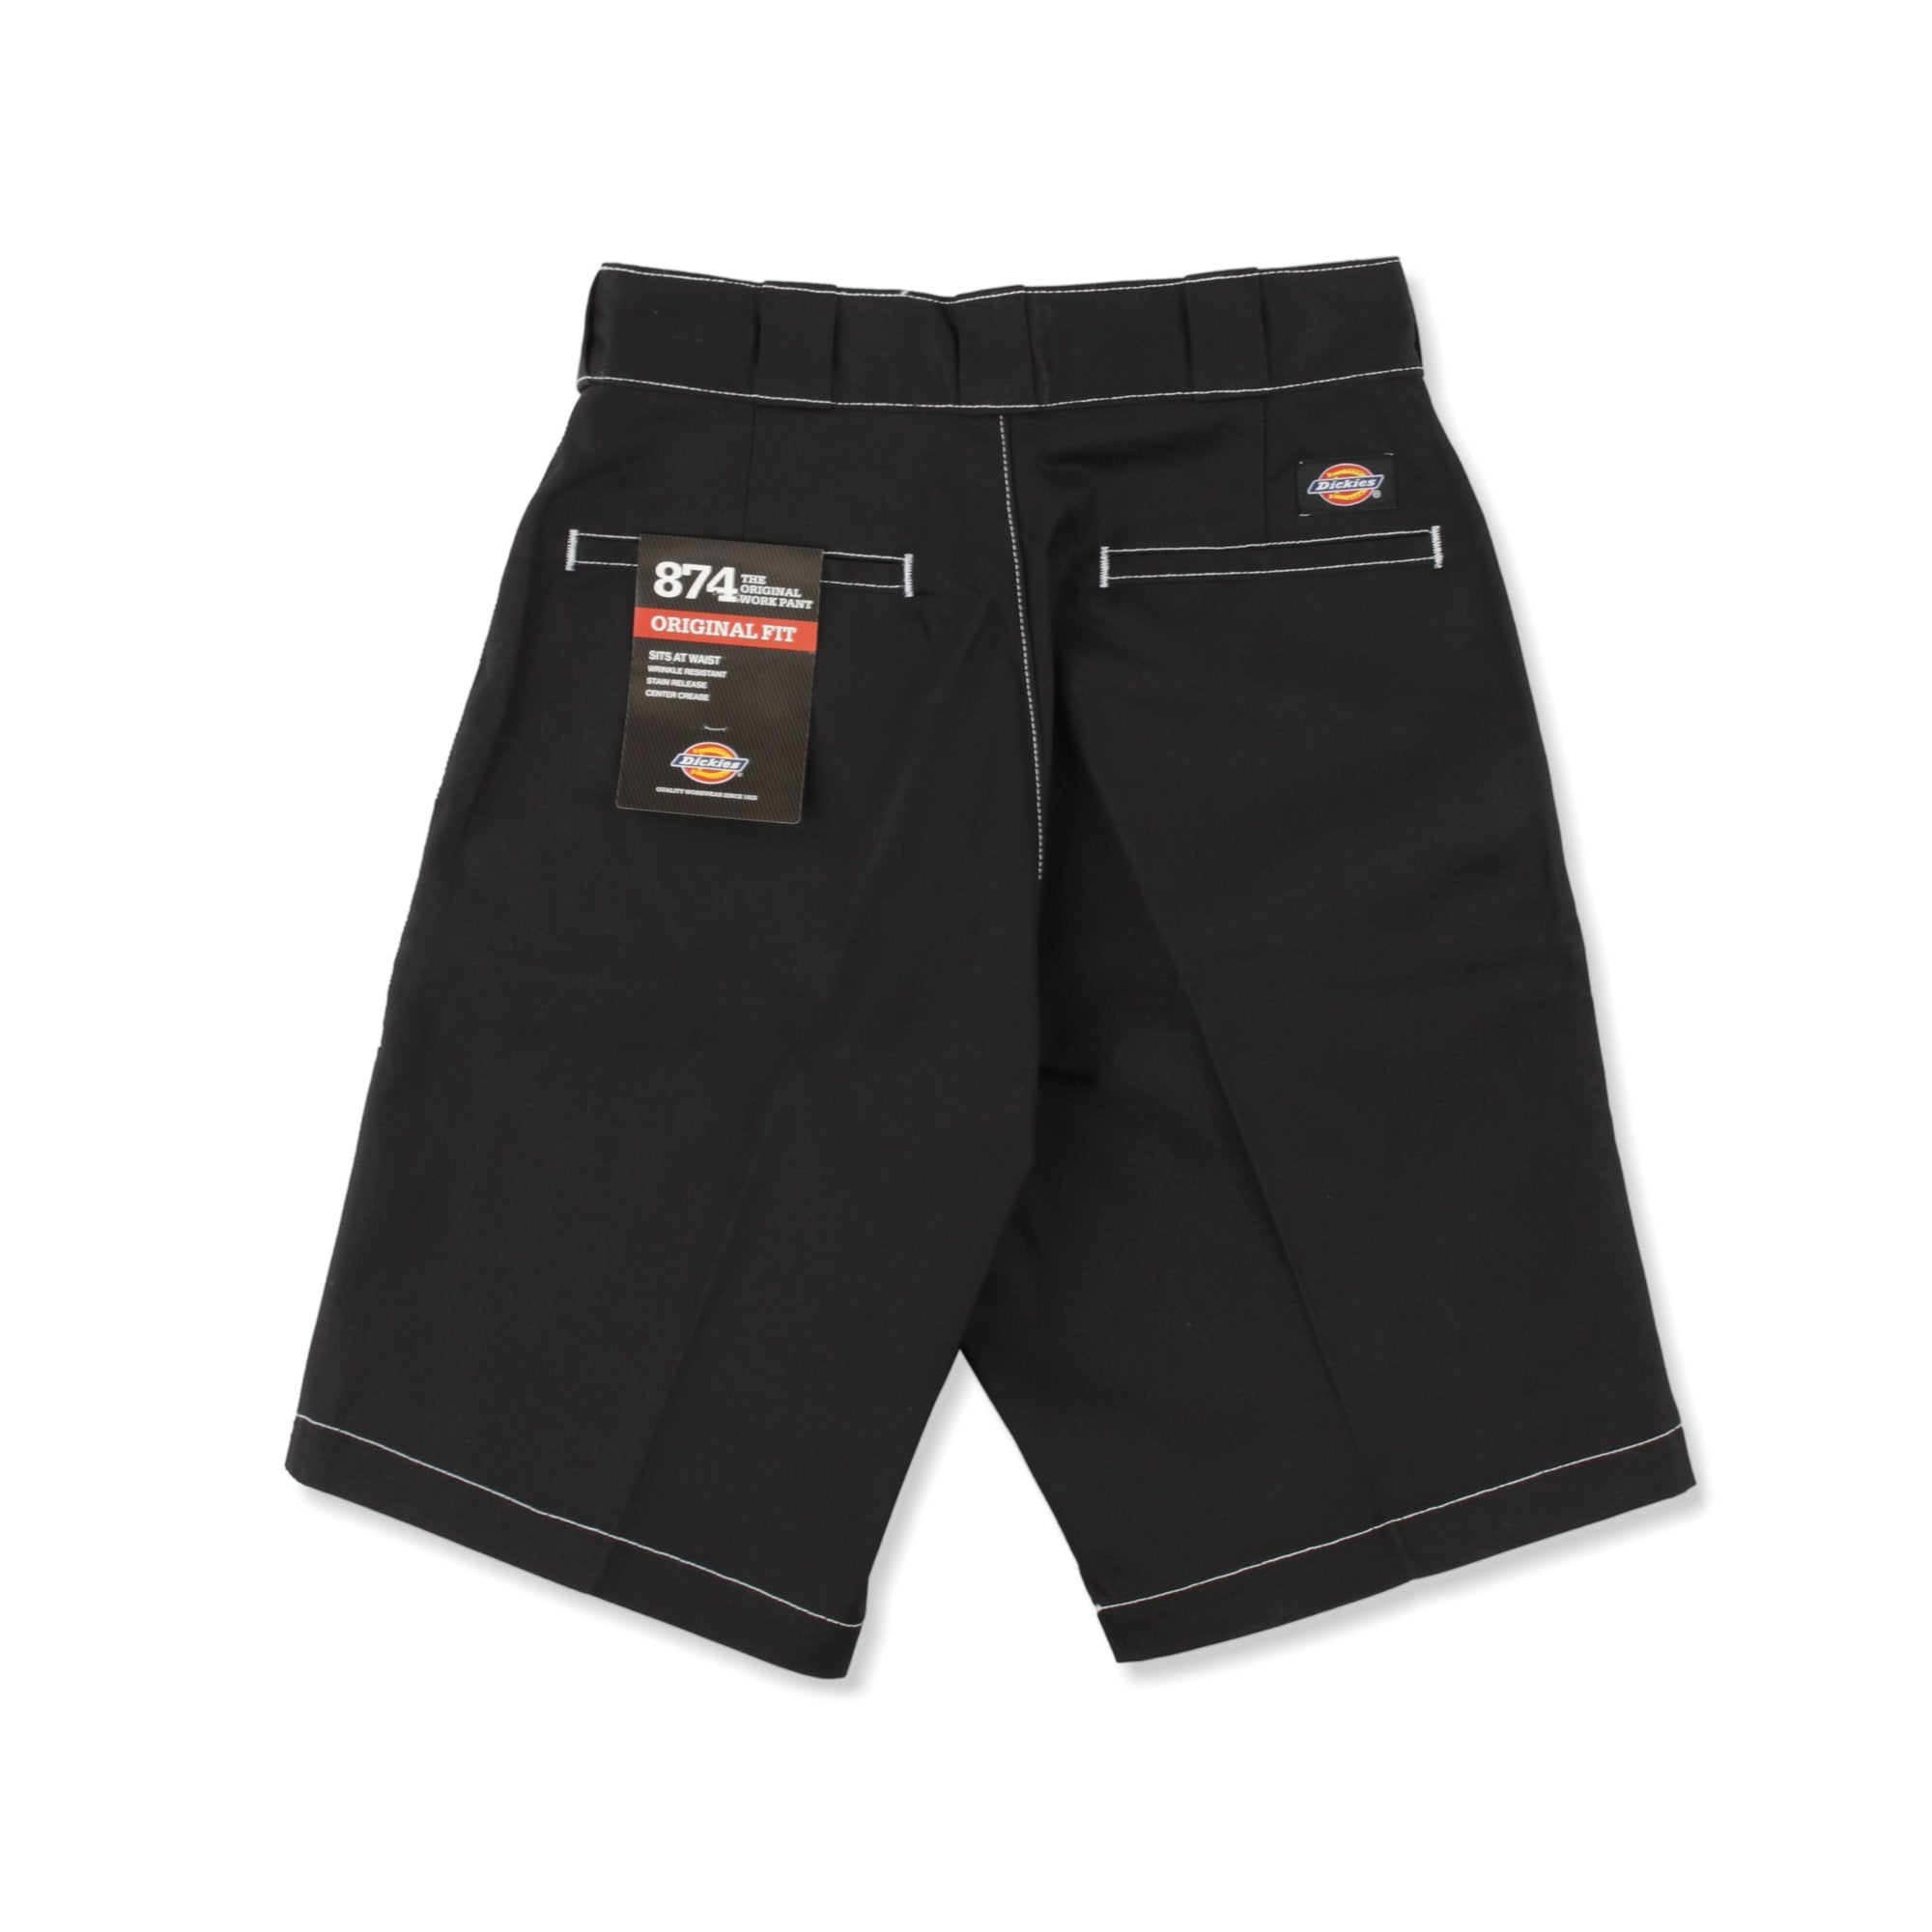 Dickies 874C Shorts Product Photo #2